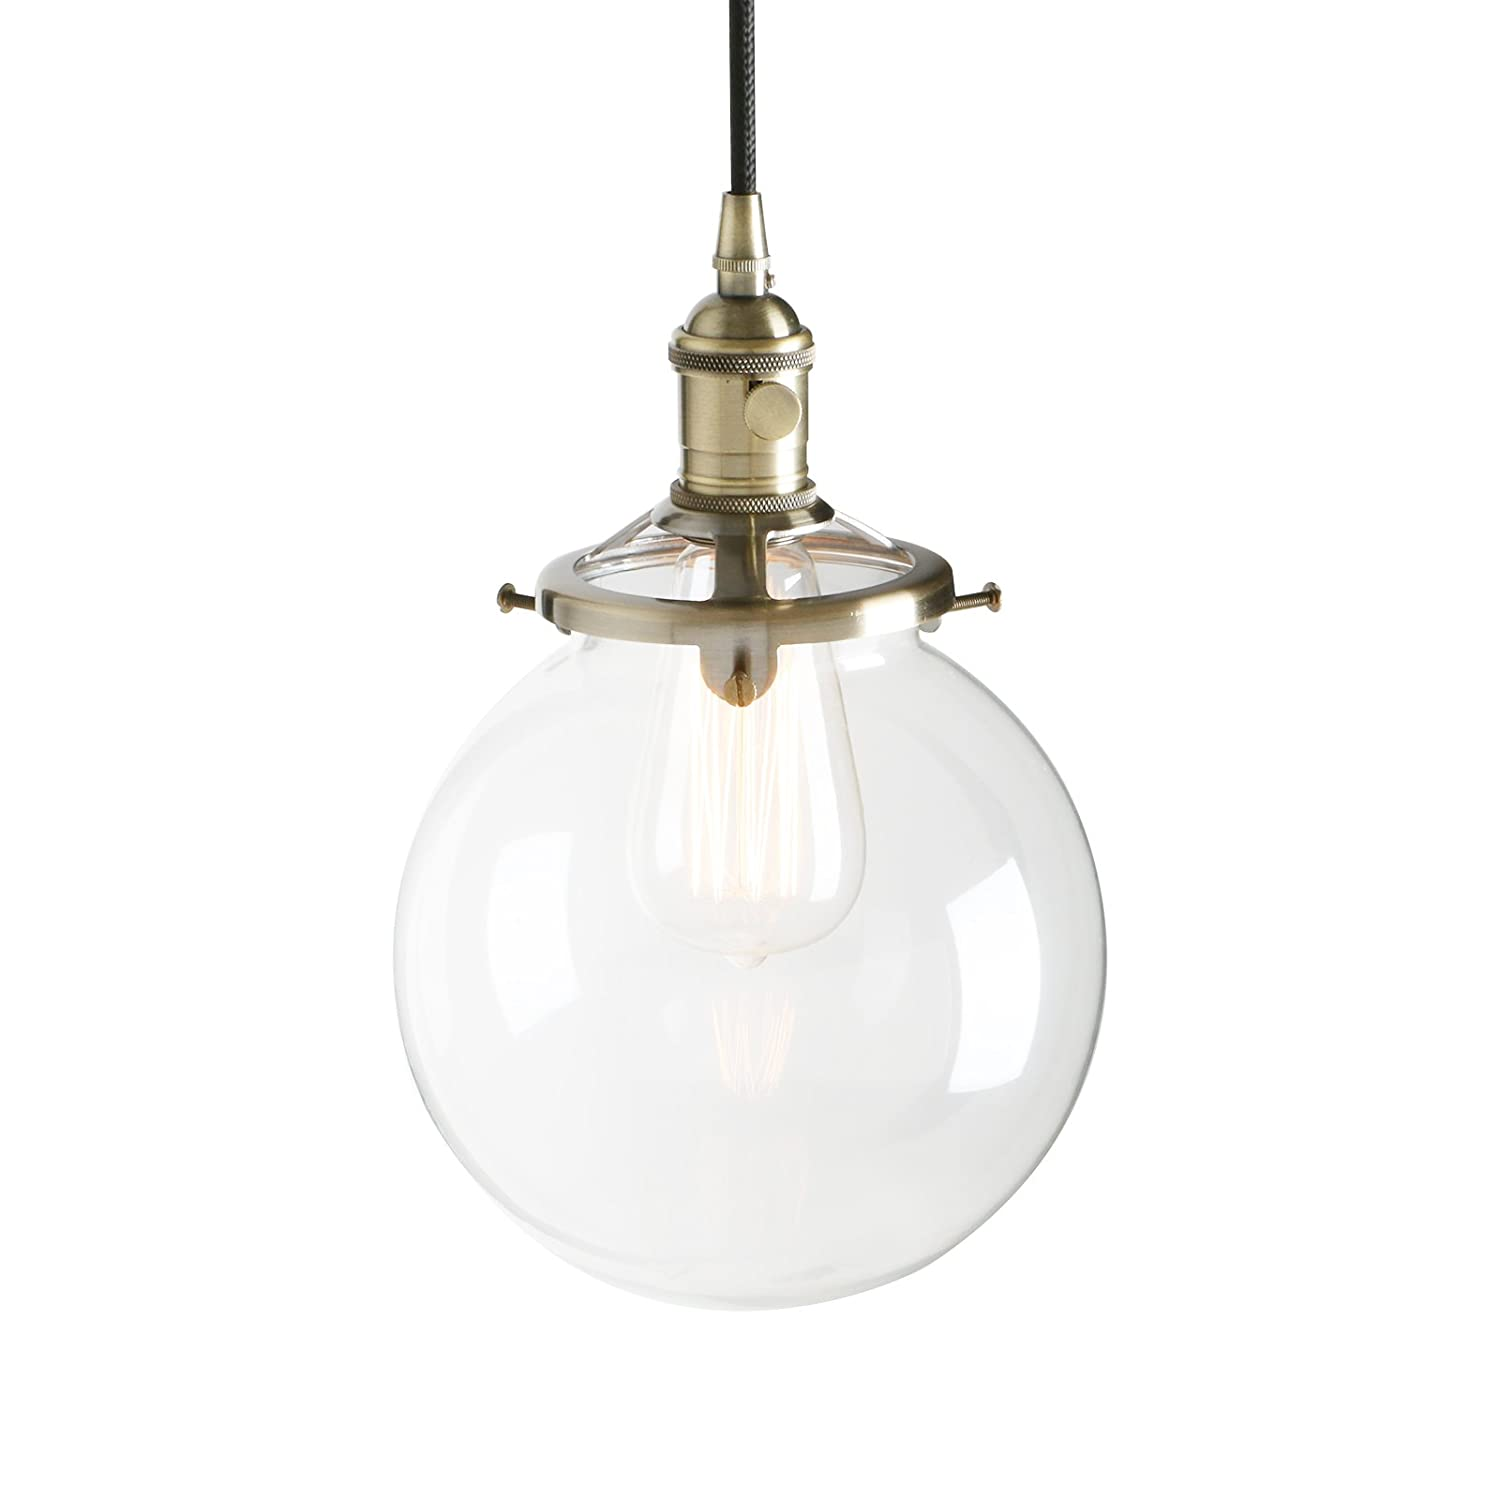 Pathson Industrial Modern Vintage Edison Hanging Light Fitting Pendant Ceiling